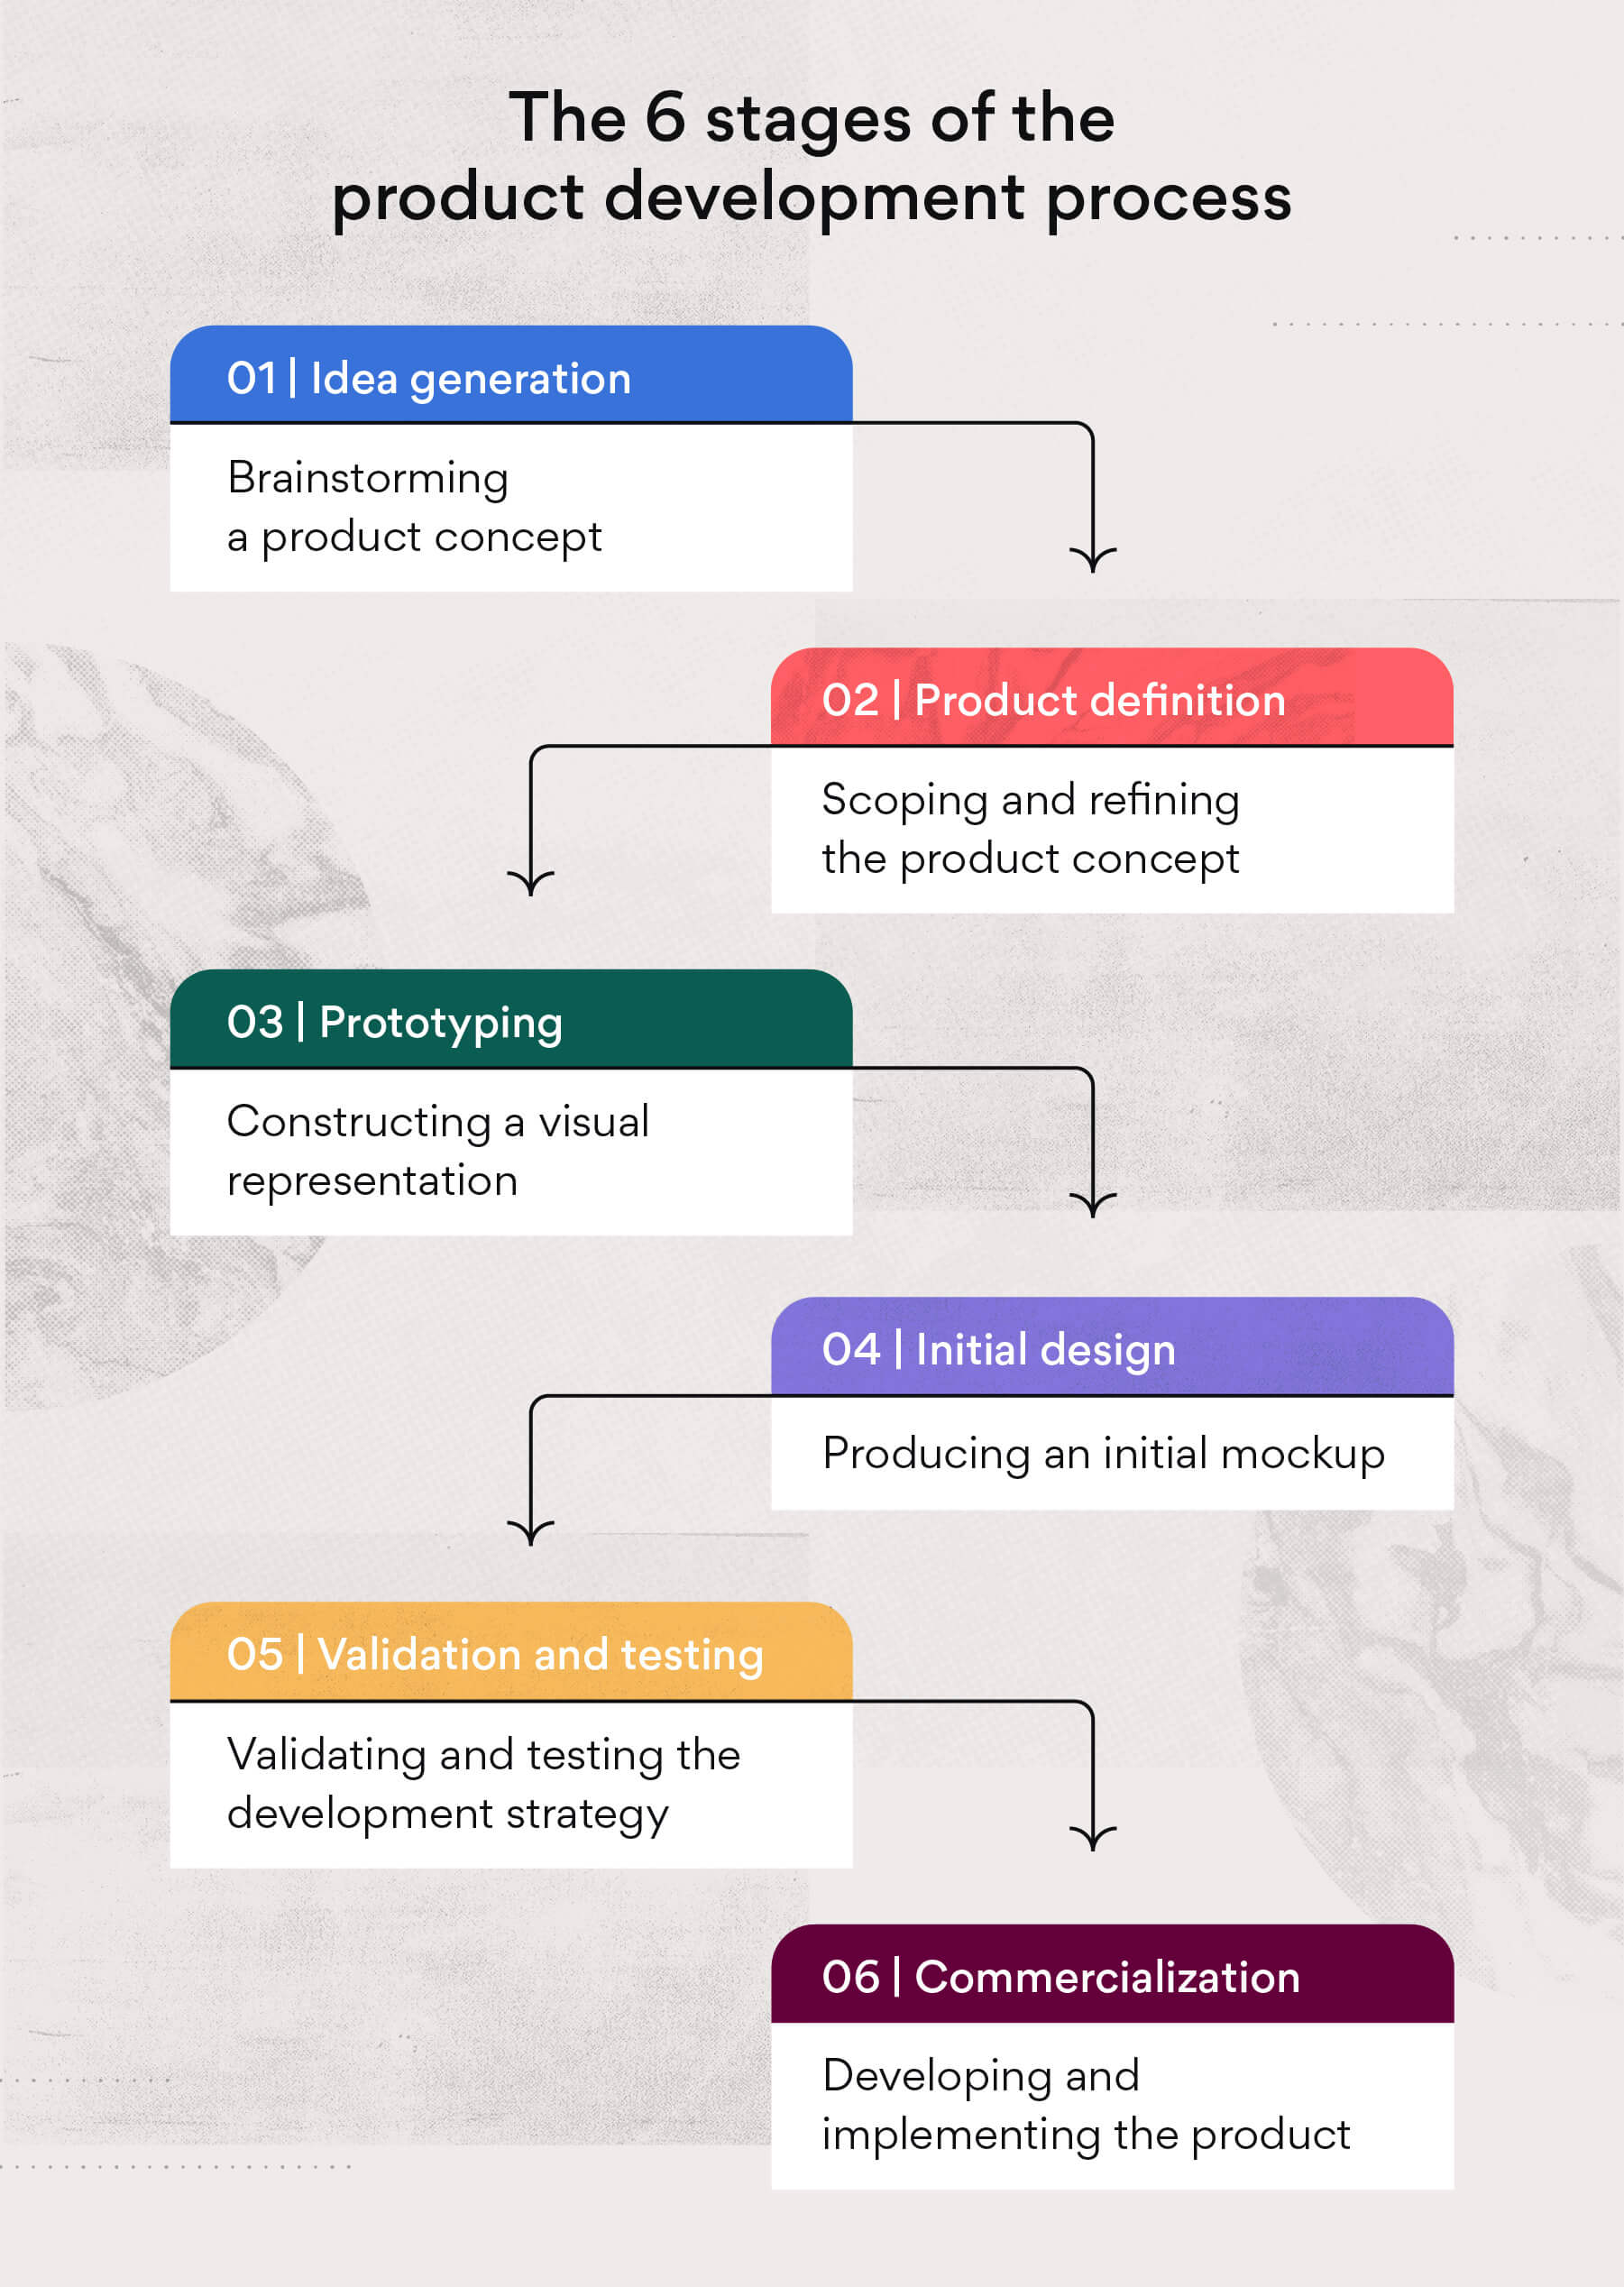 The six stages of the product development process